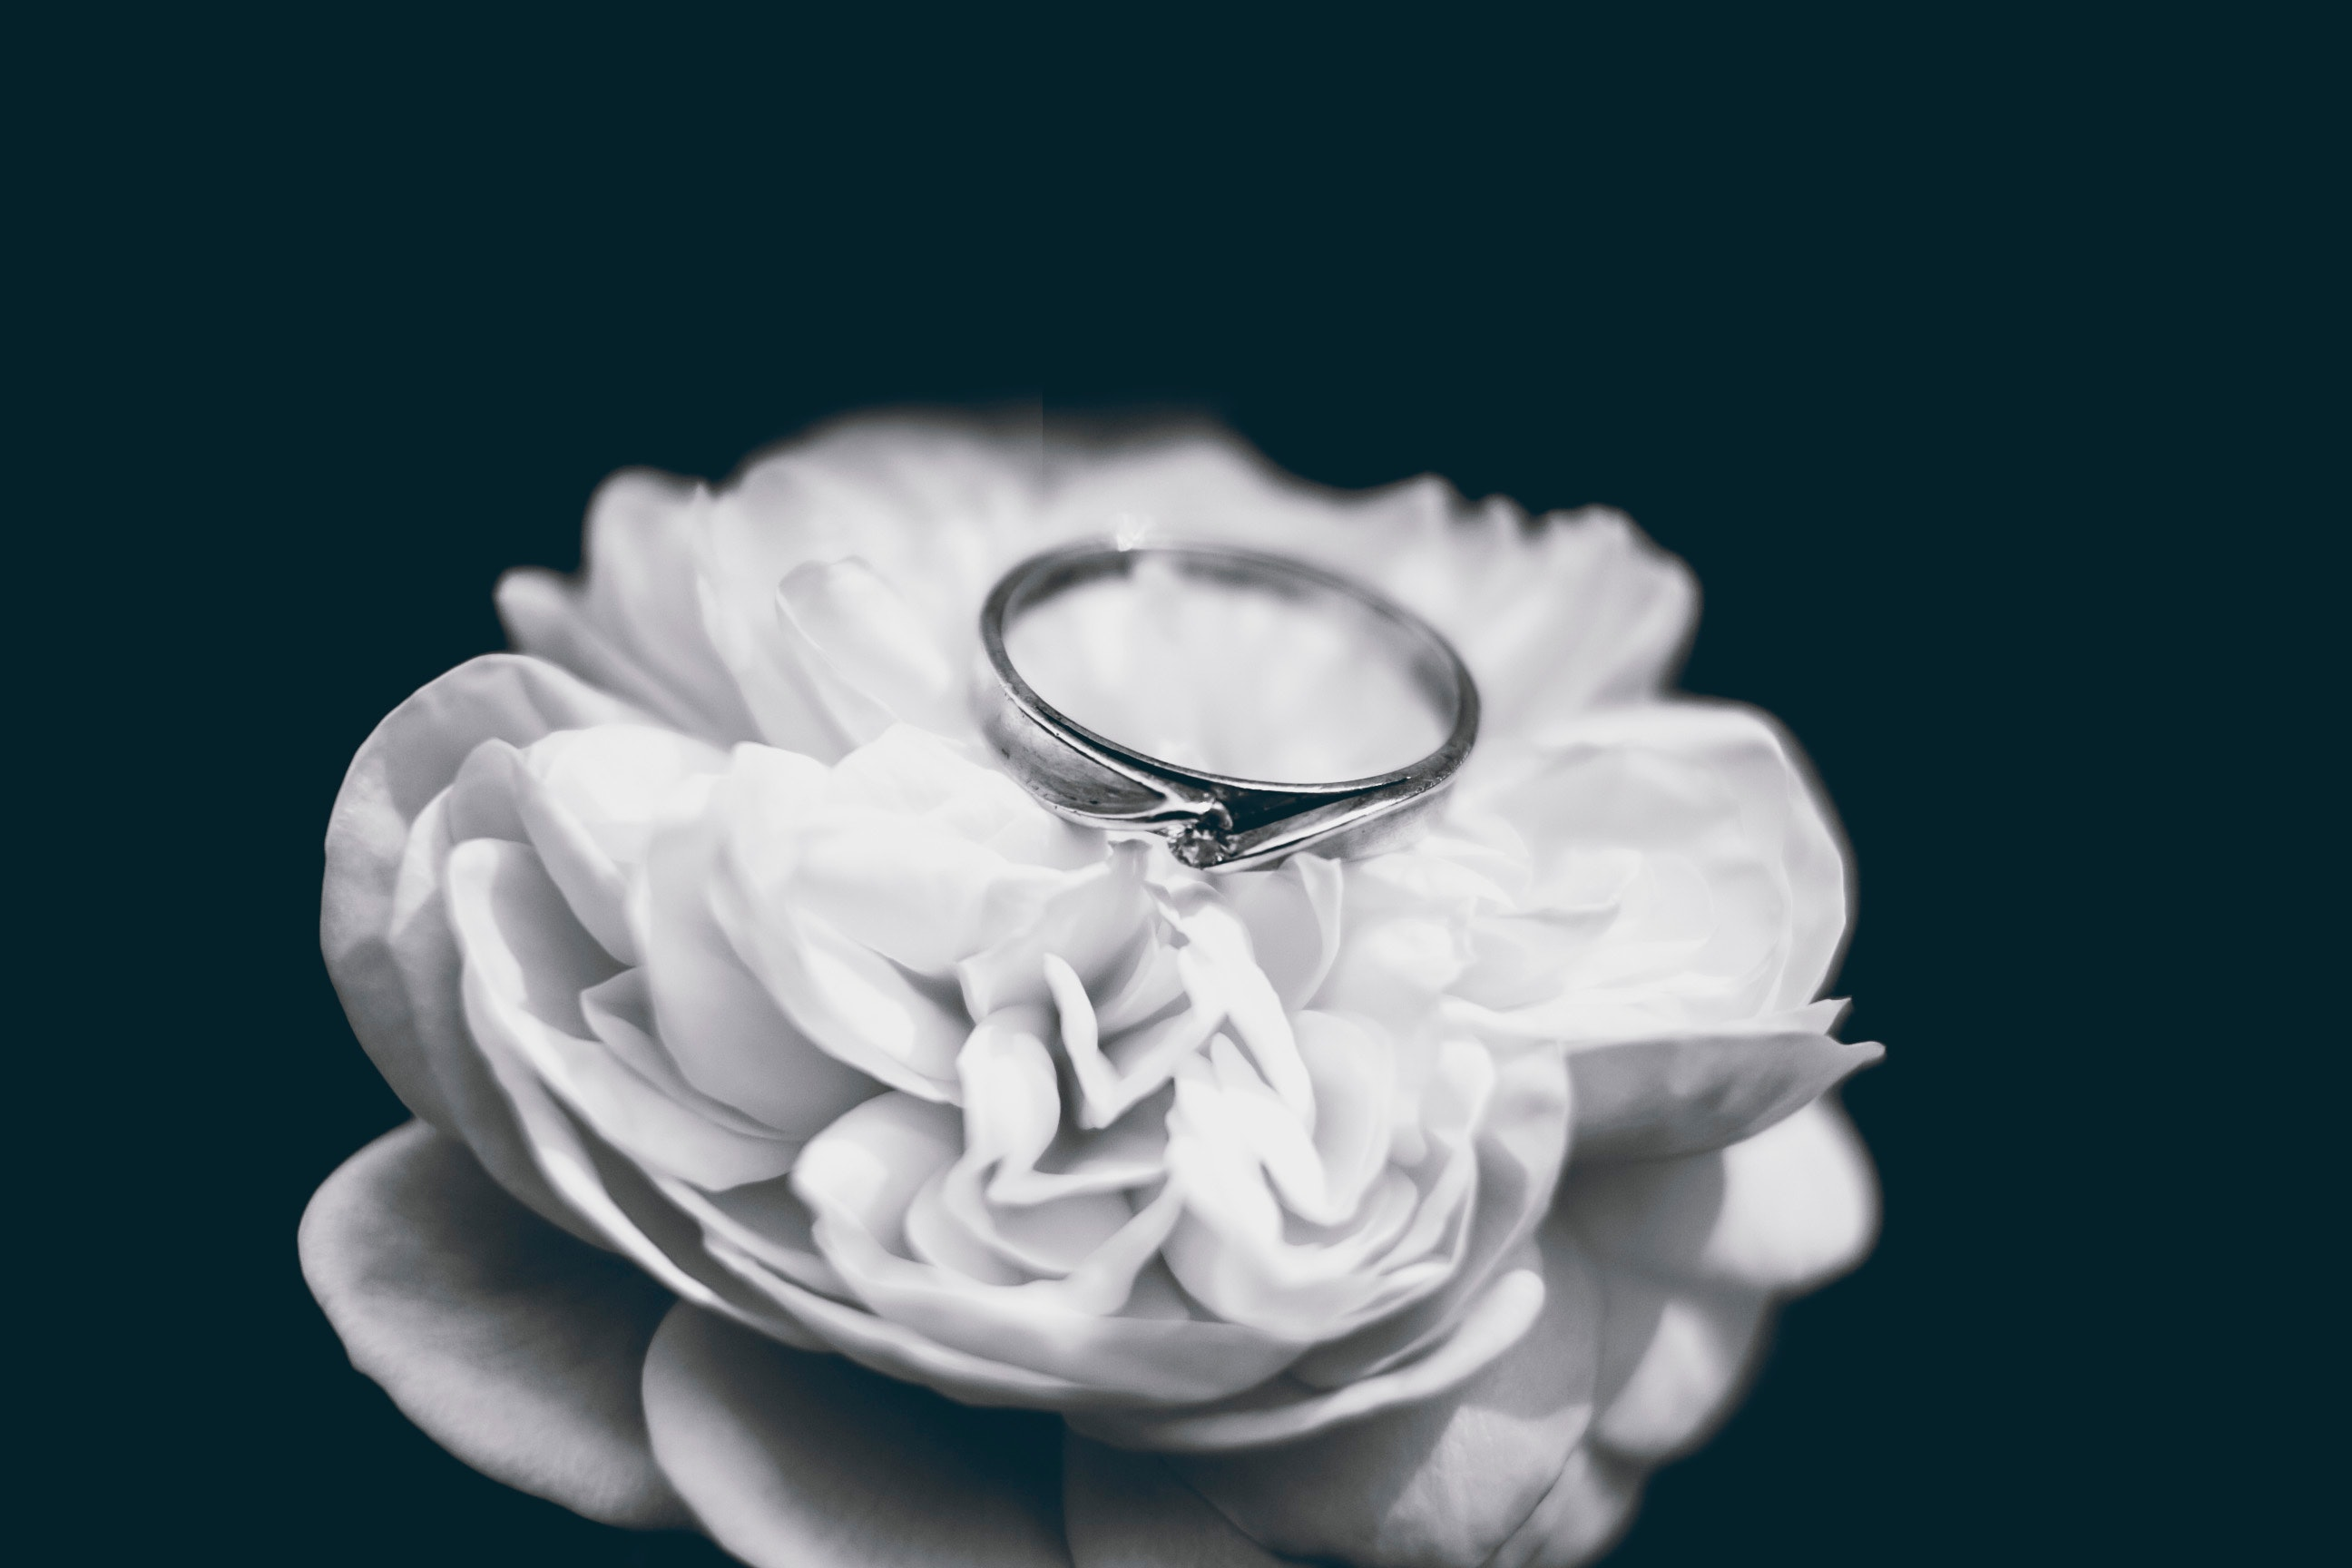 Stock black and white photo of a ring on top of a pale flower with many layers of petals, meant to euphemistically represent a butthole.